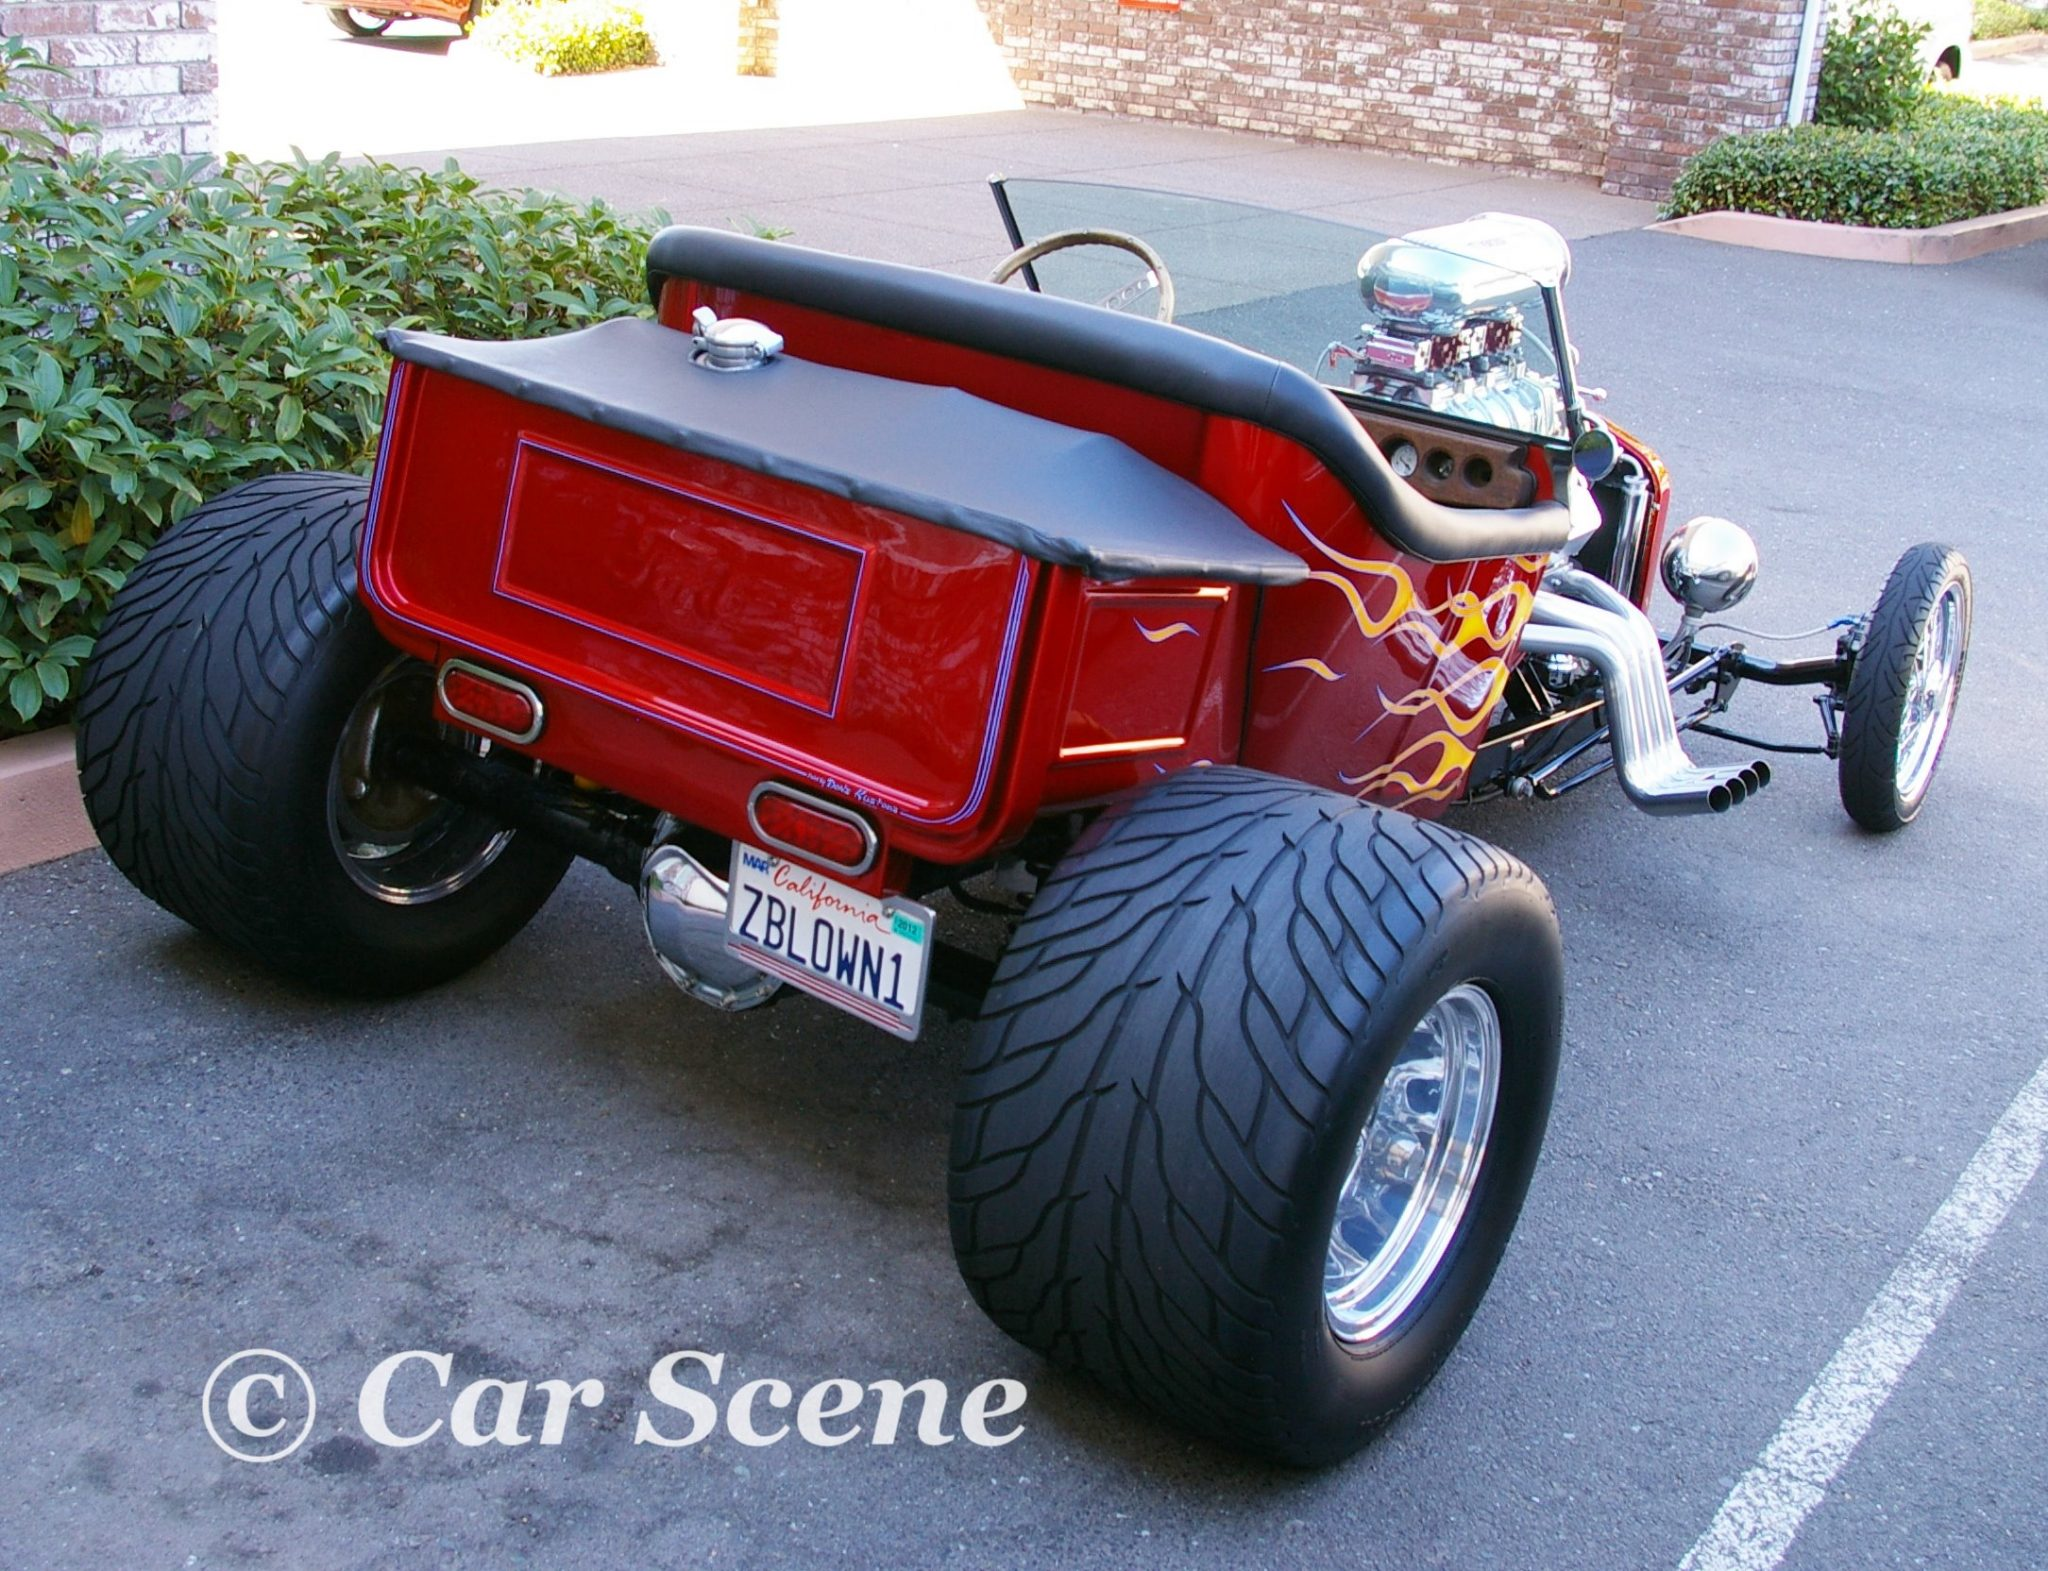 Californian Ford based Hot Rod rear view